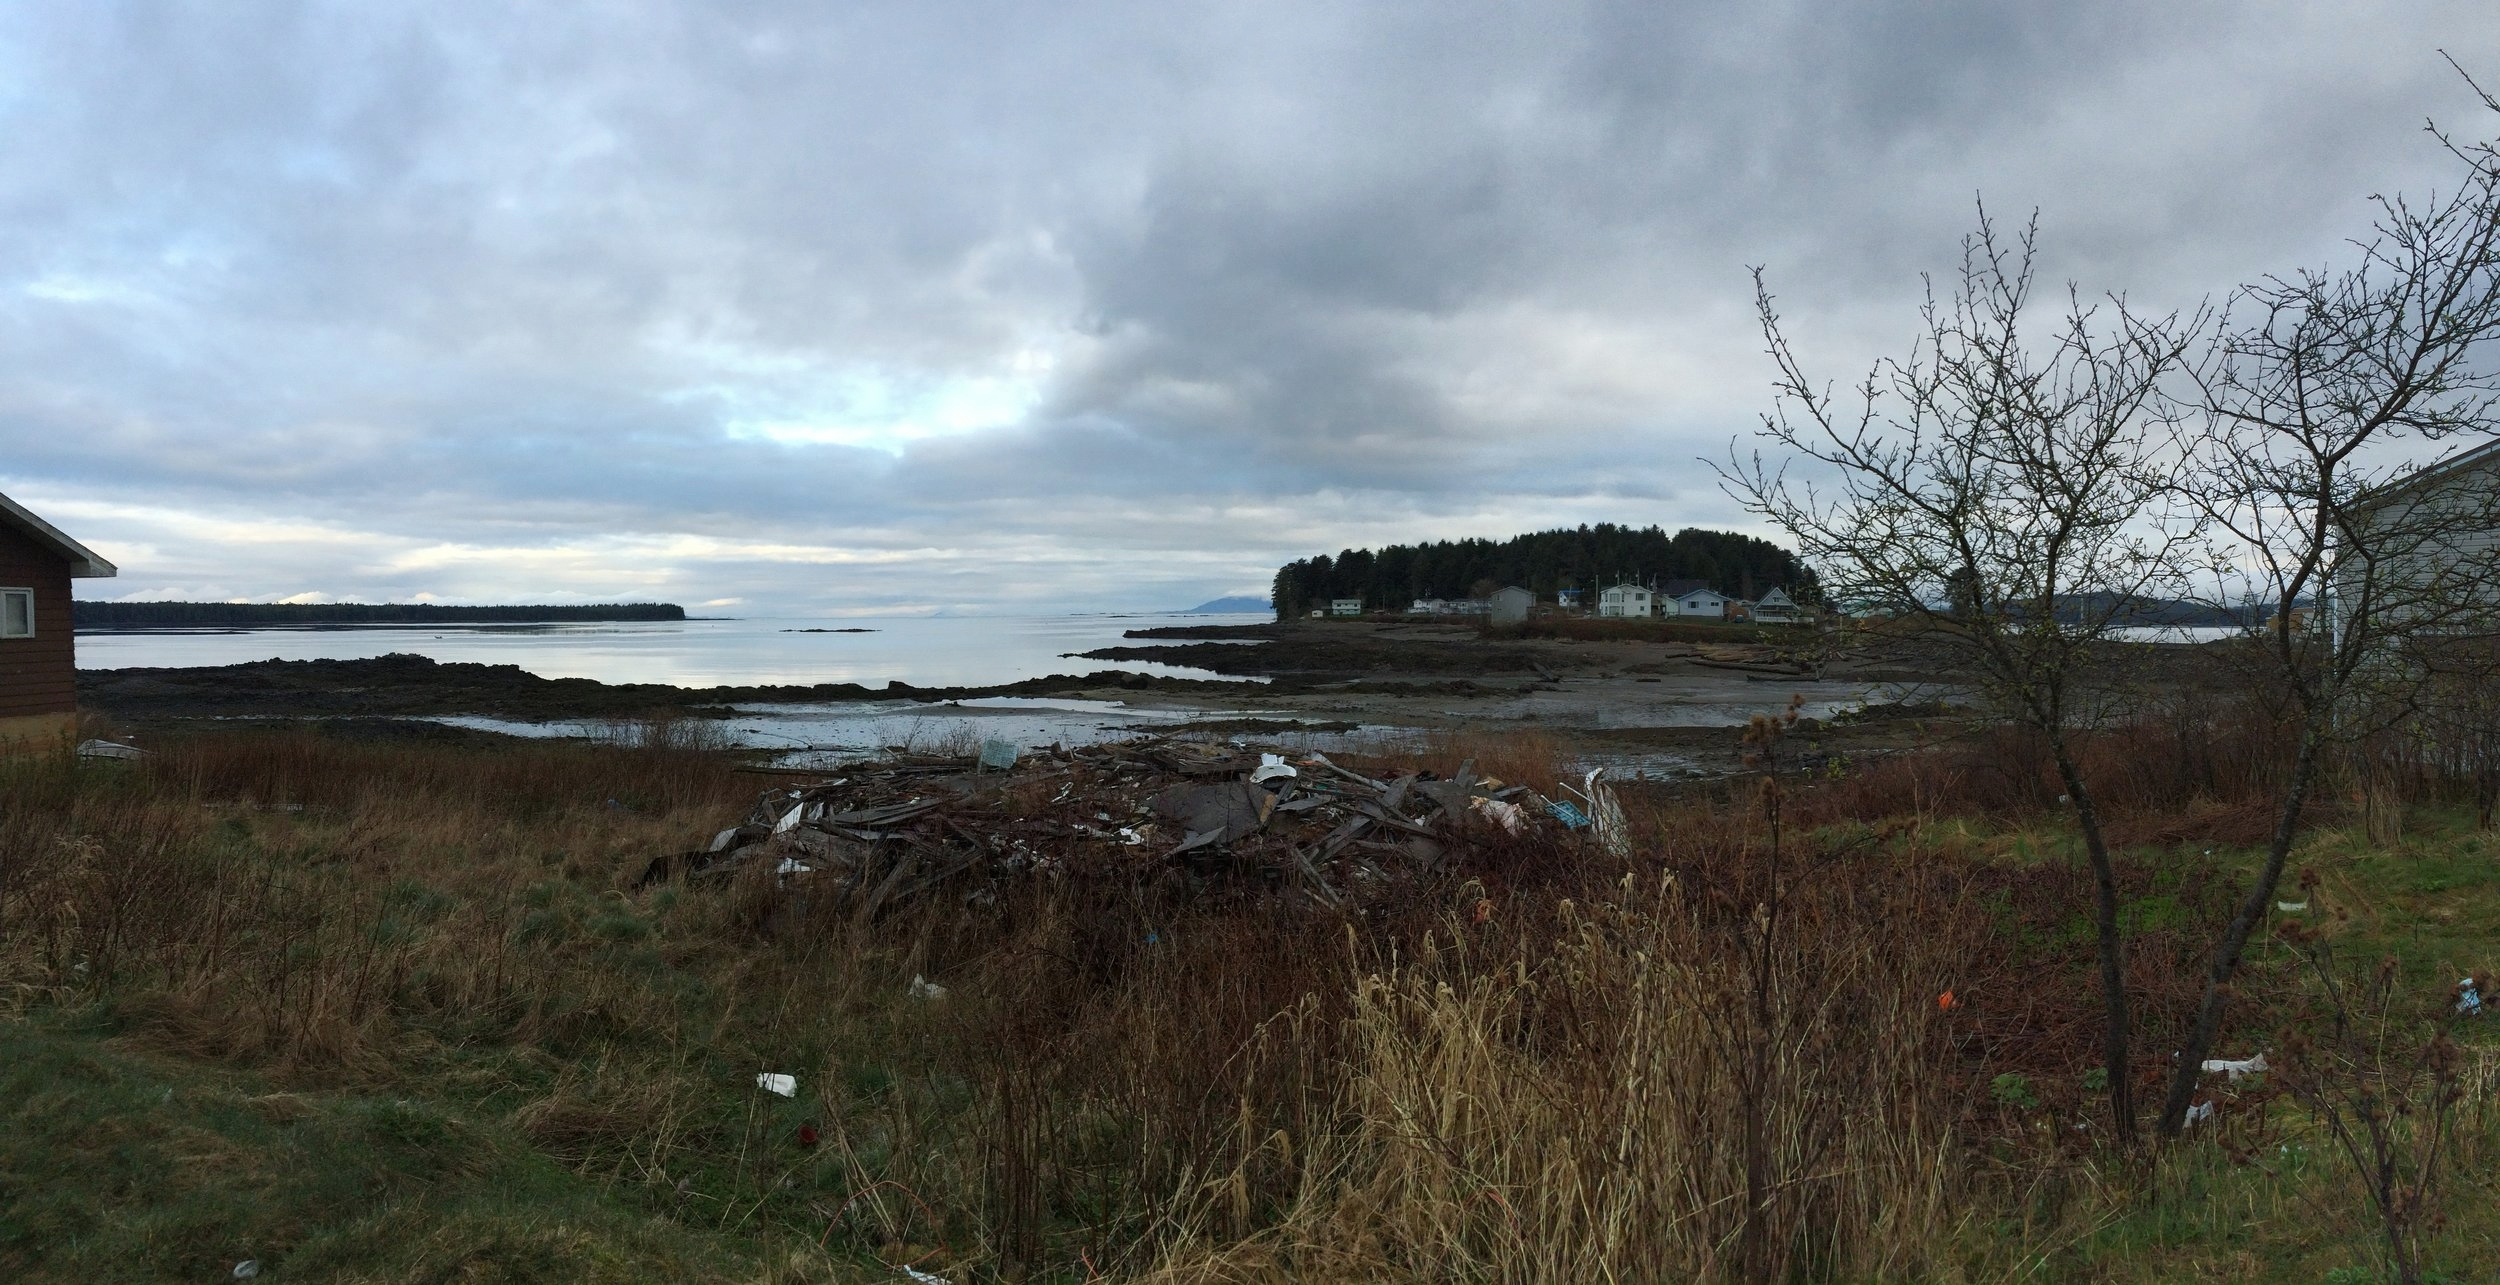 Lax Kw'alaams. Photo taken by Christina Gray March 22, 2016.